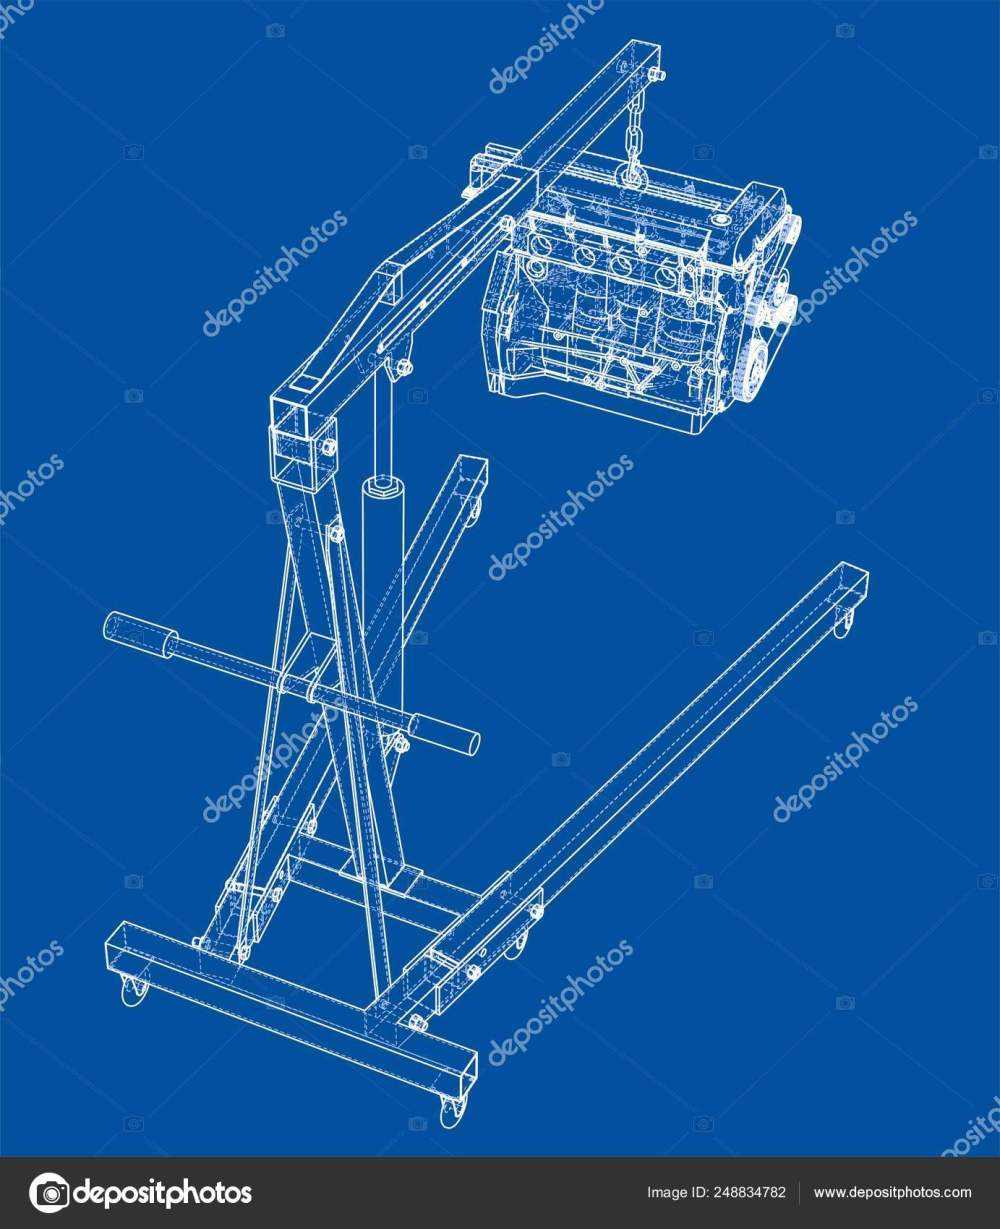 medium resolution of engine hoist with engine outline stock vector